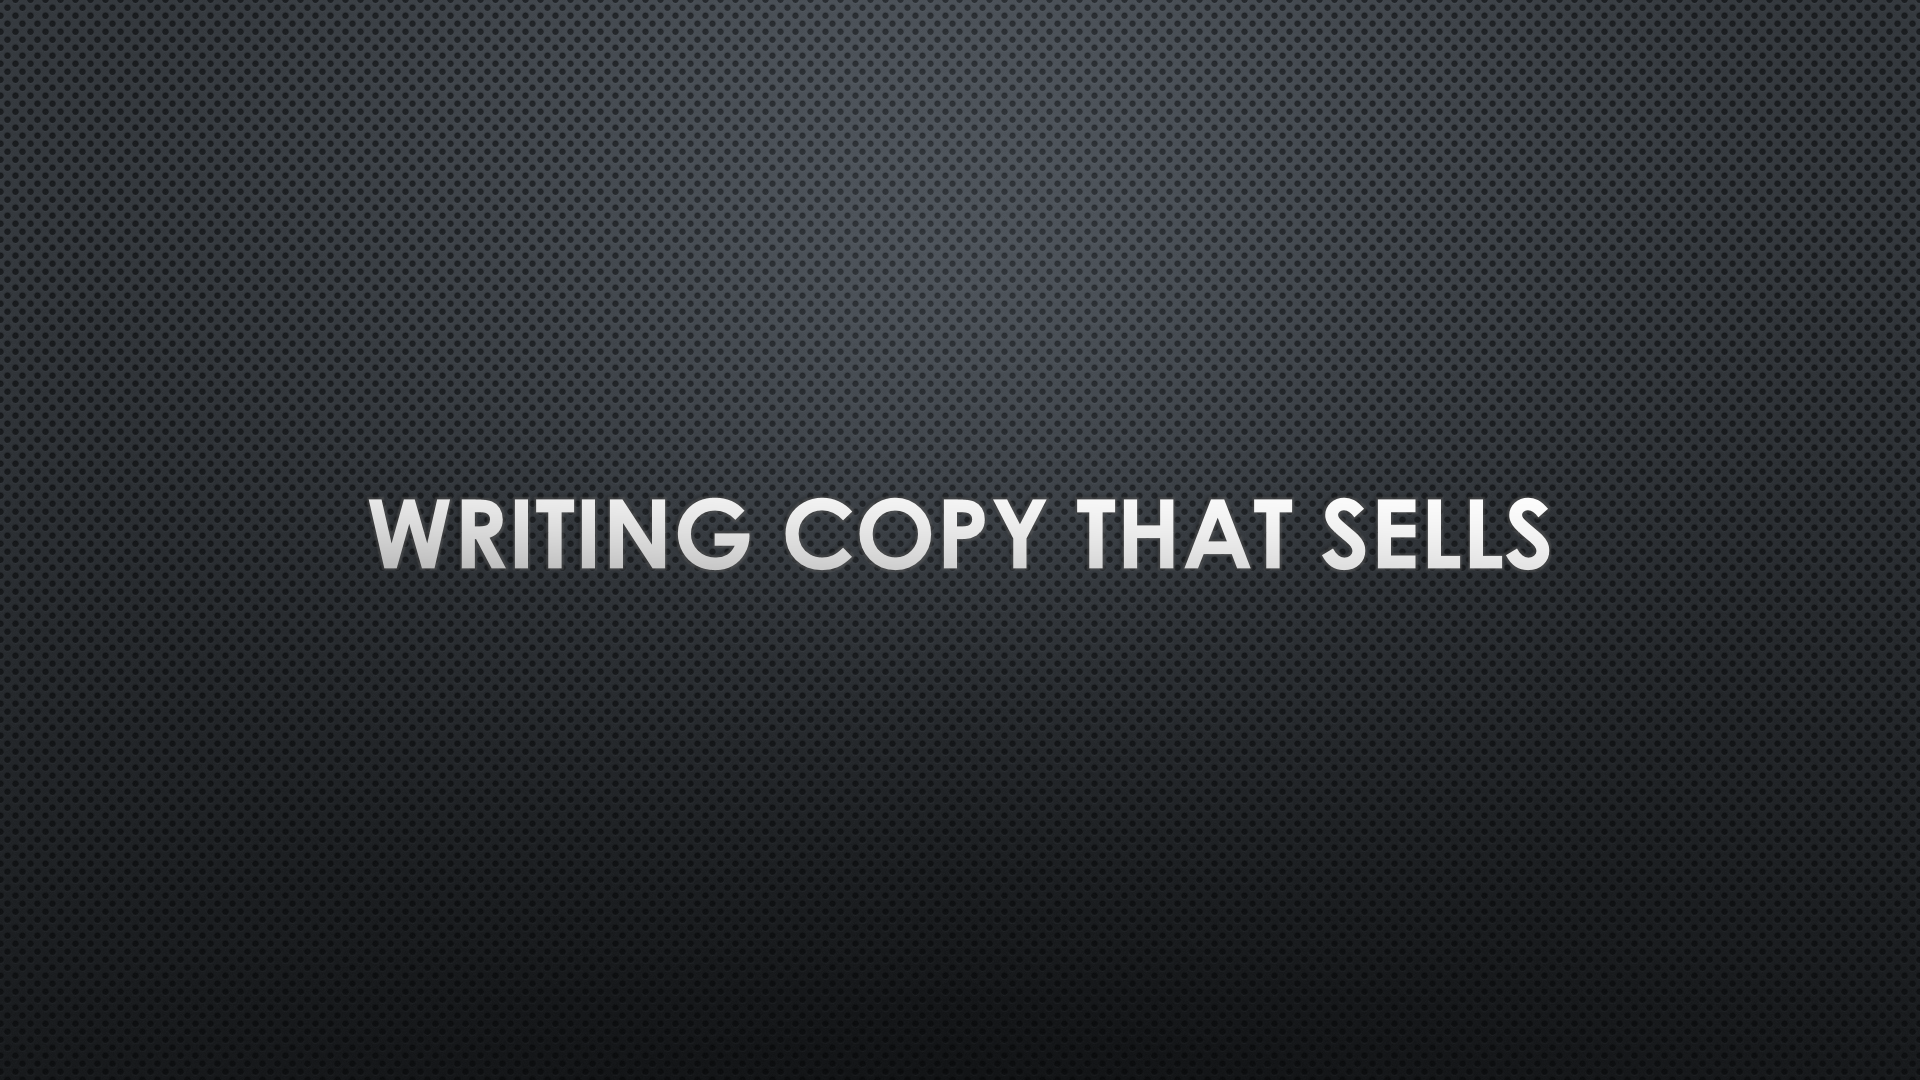 Writing_Copy_That_Sells_With_Wordplay